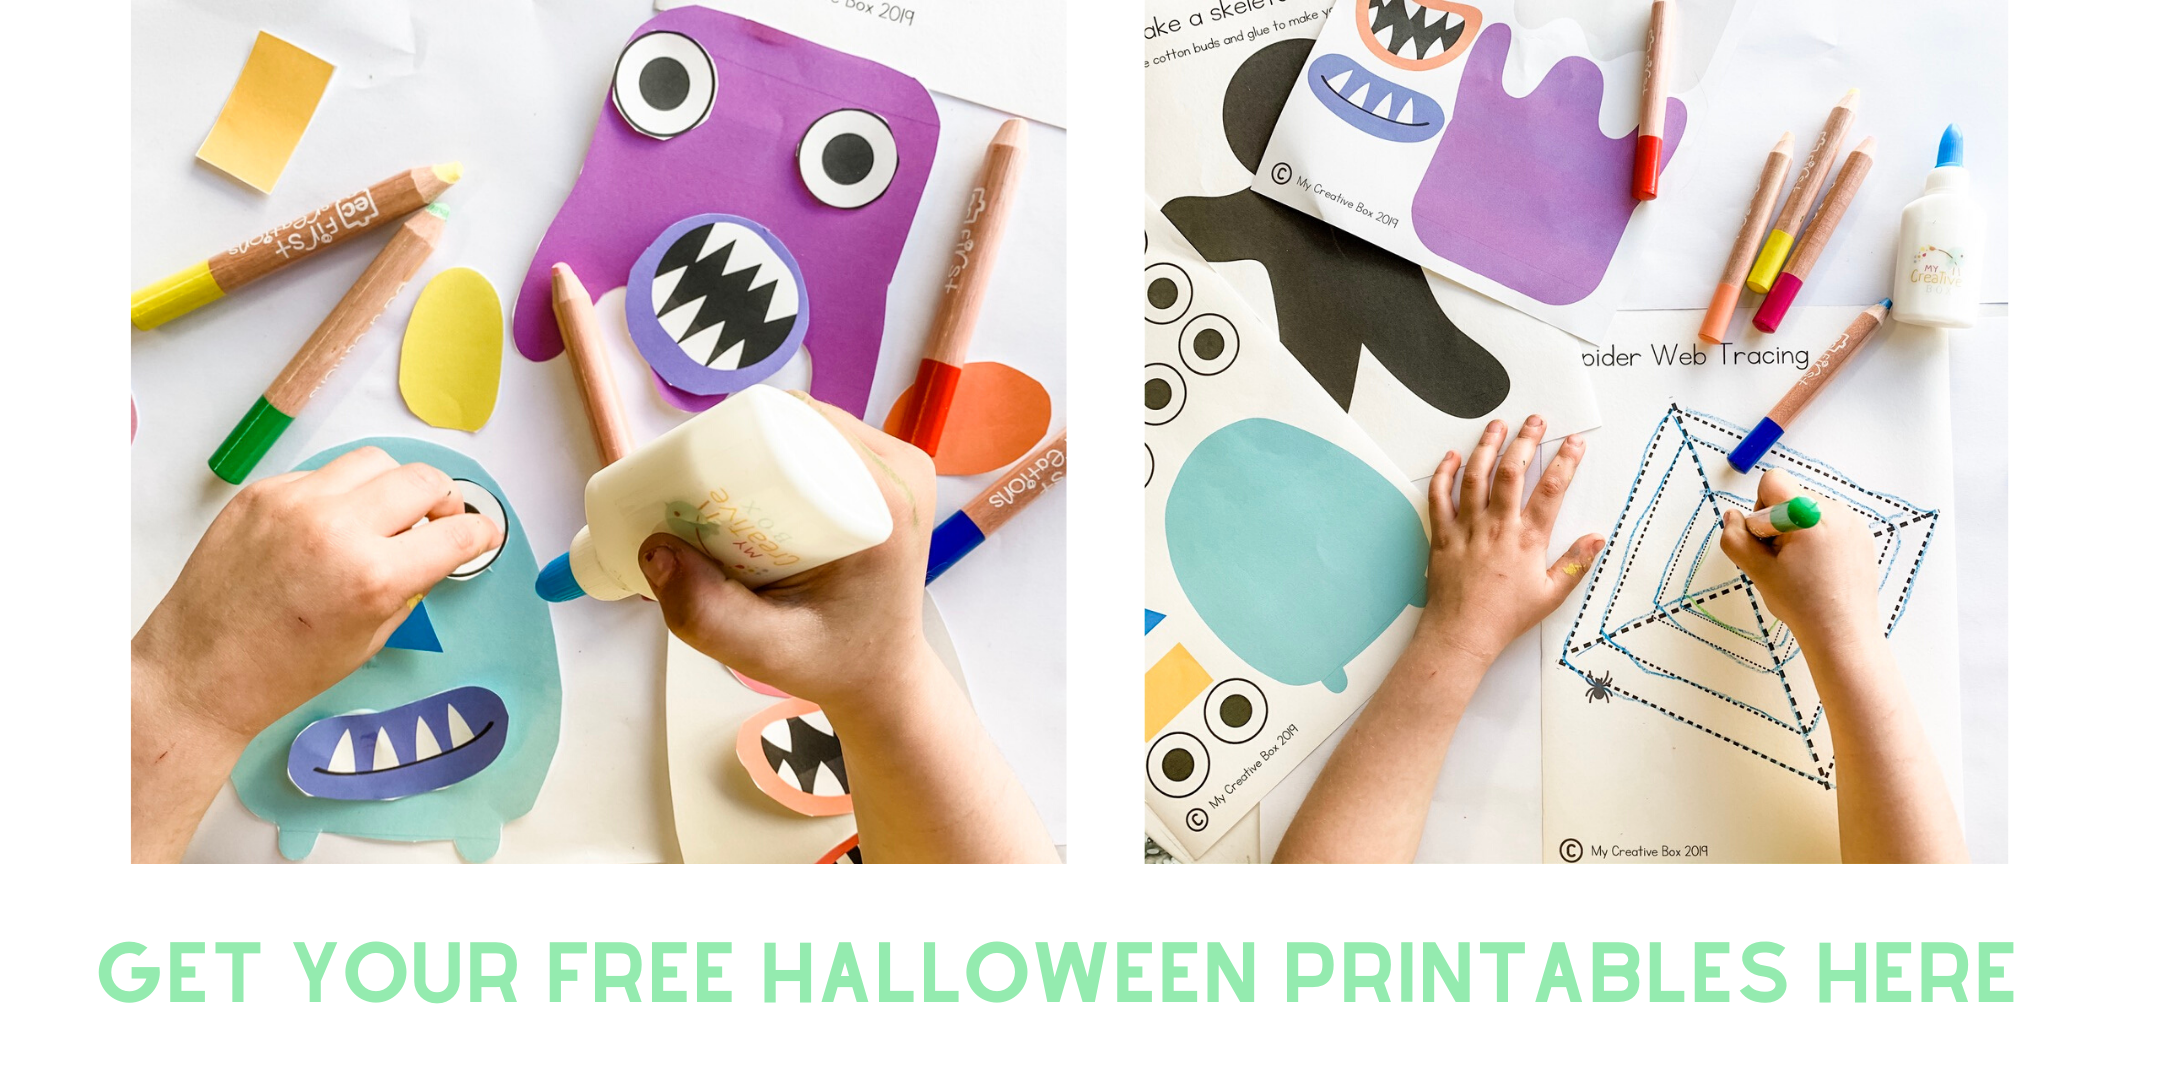 FREE HALLOWEEN LEARNING PRINTABLES FOR KIDS